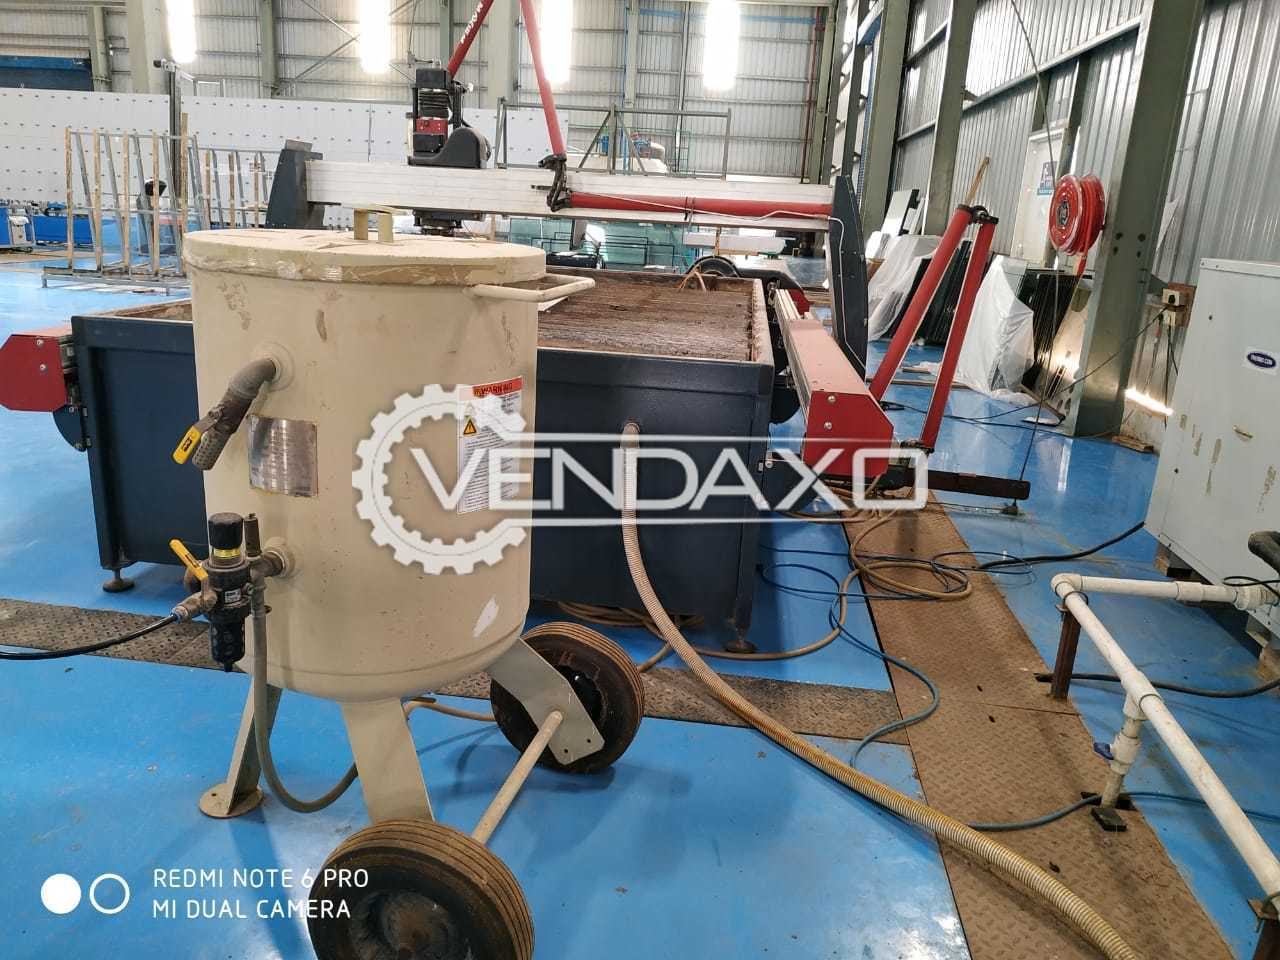 Used OMAX MAXEIM 2030 Waterjet Cutting Machine - Table Size